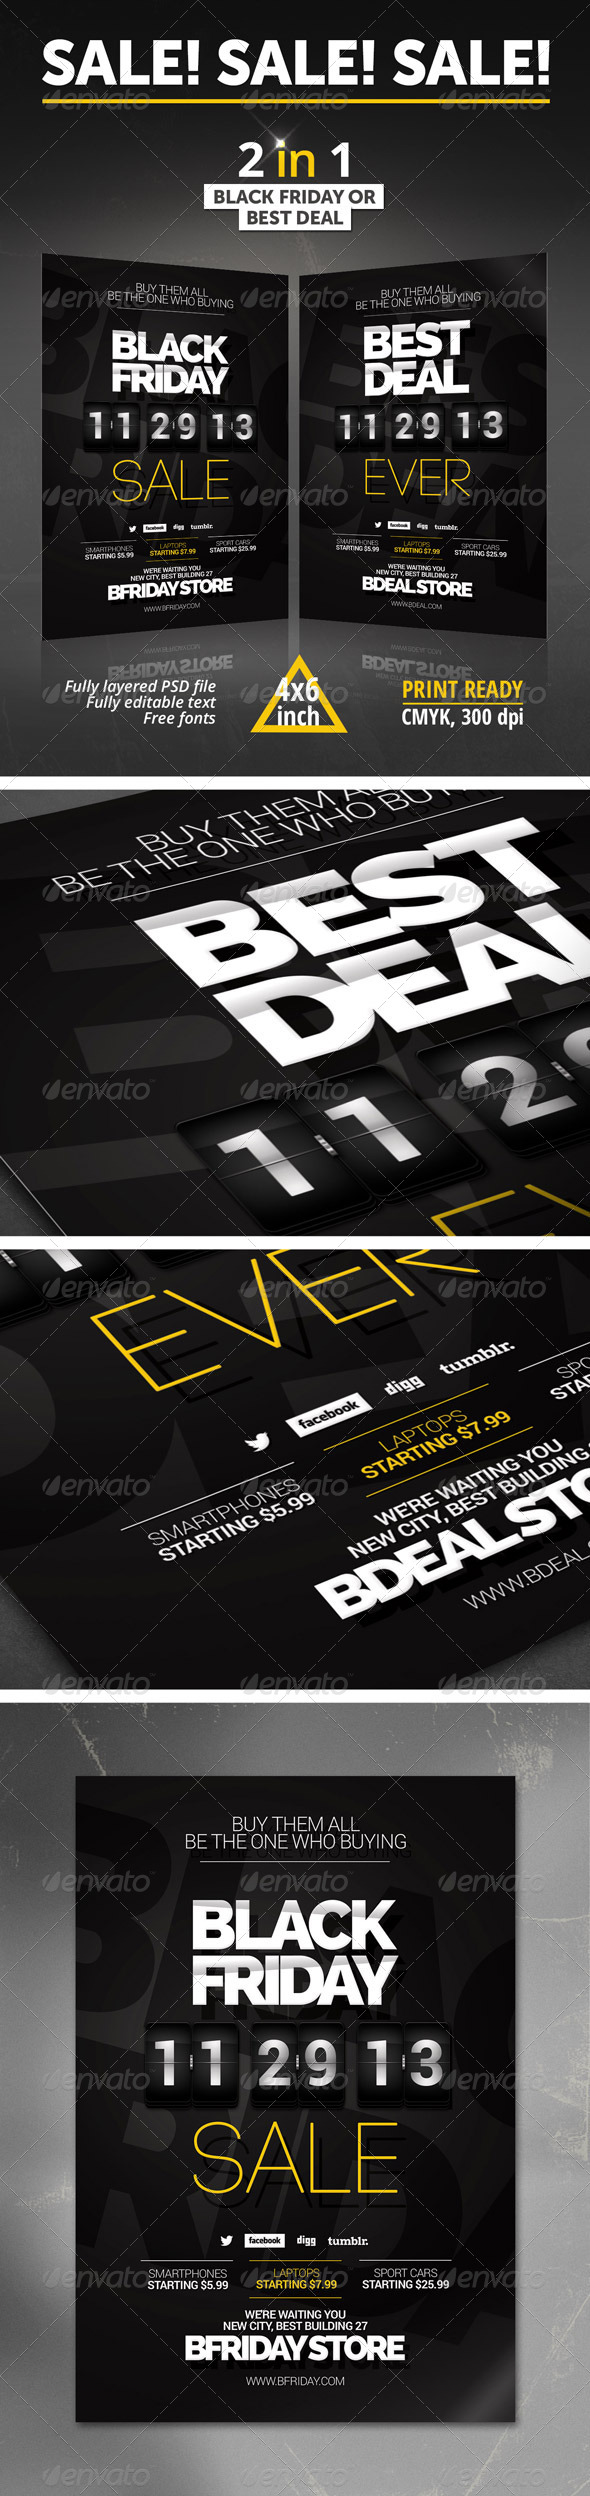 GraphicRiver Black Friday Best Deal Flyer 6247959